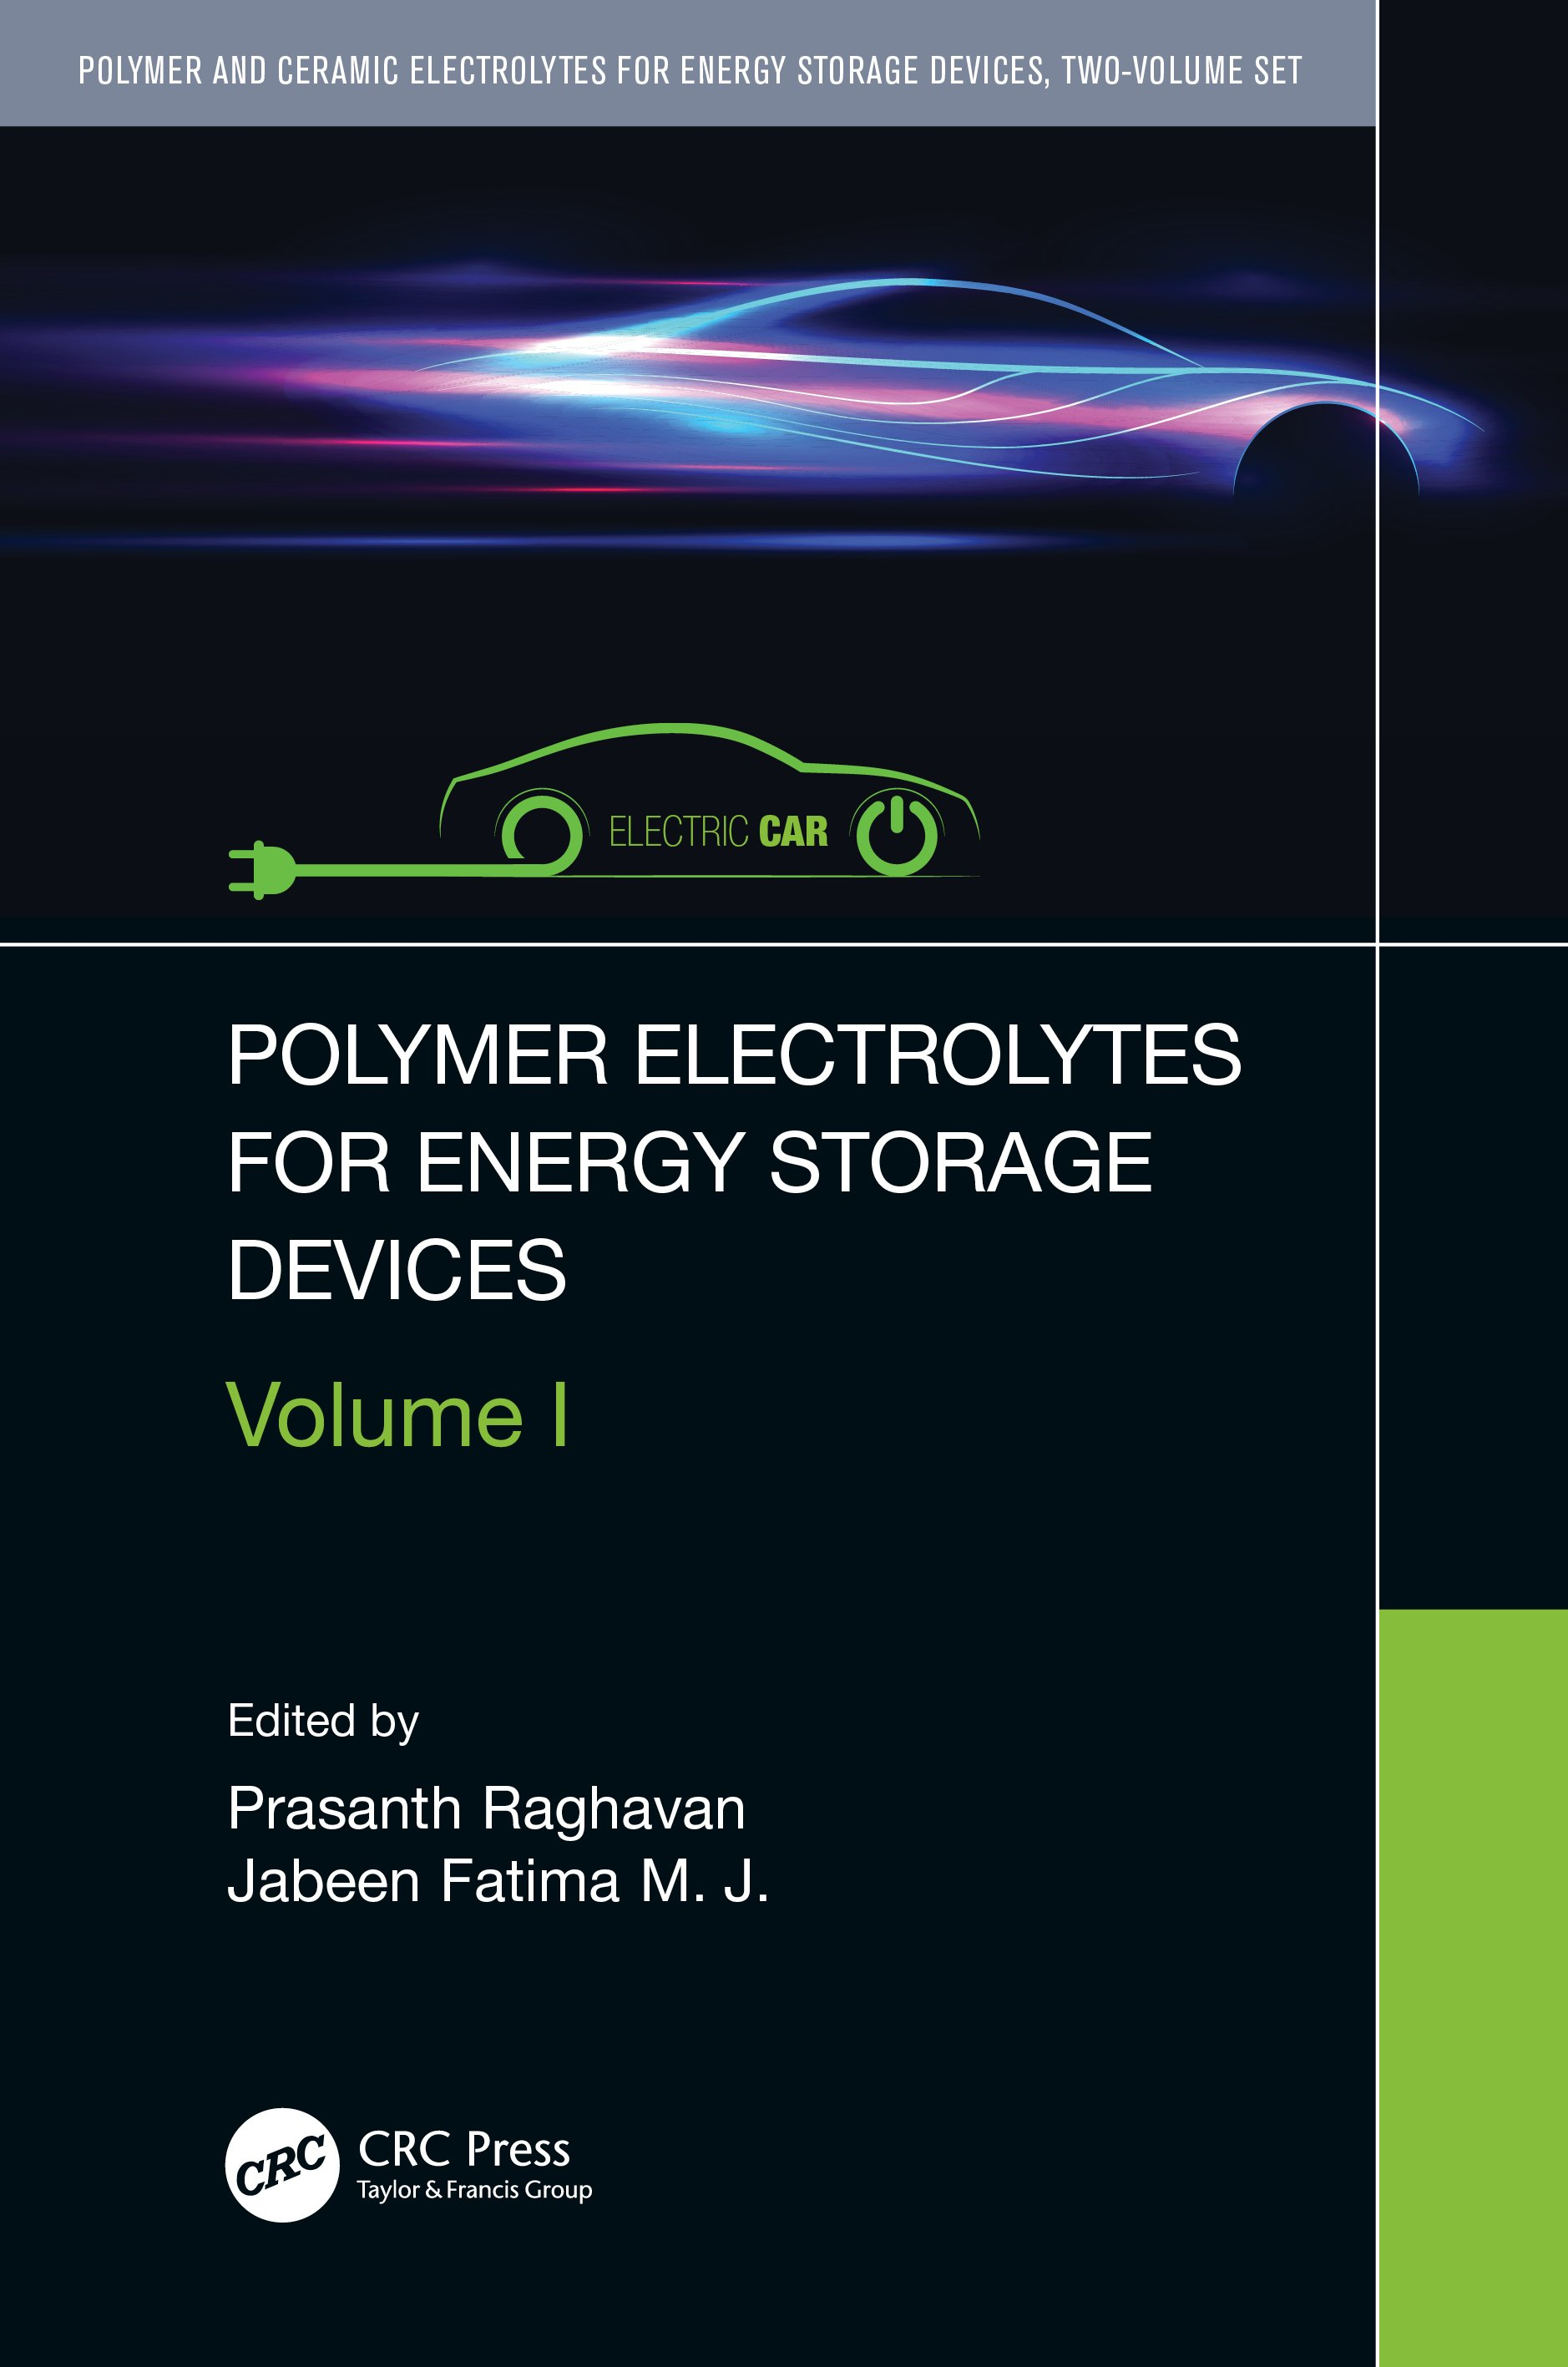 Polyethylene Oxide (PEO)-Based Solid Polymer Electrolytes for Rechargeable Lithium-Ion Batteries